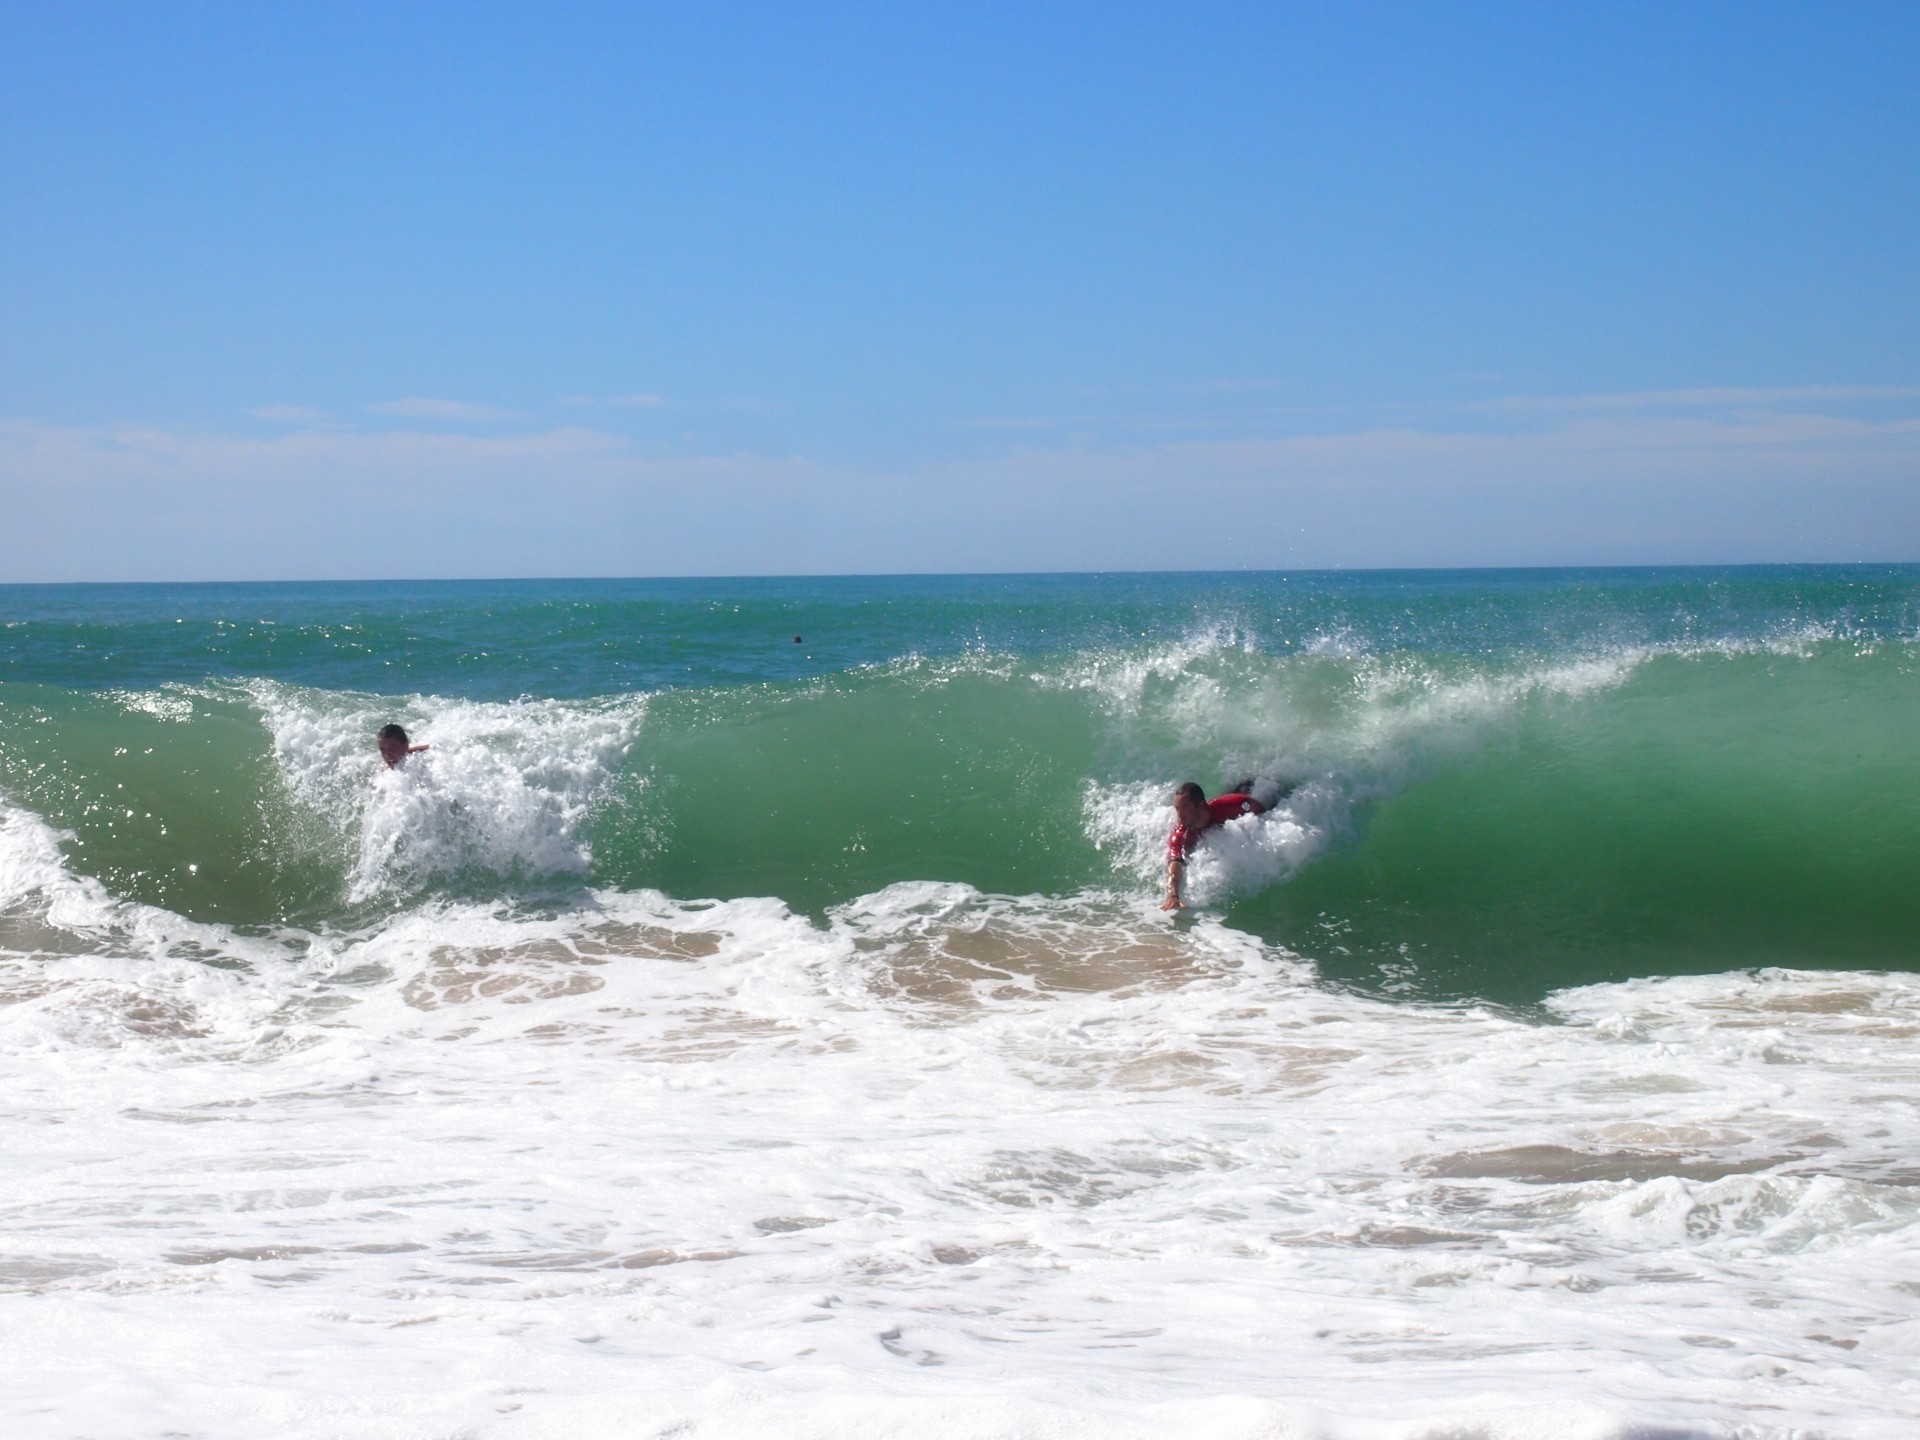 Sam Osmond's photo of Biarritz Grande Plage